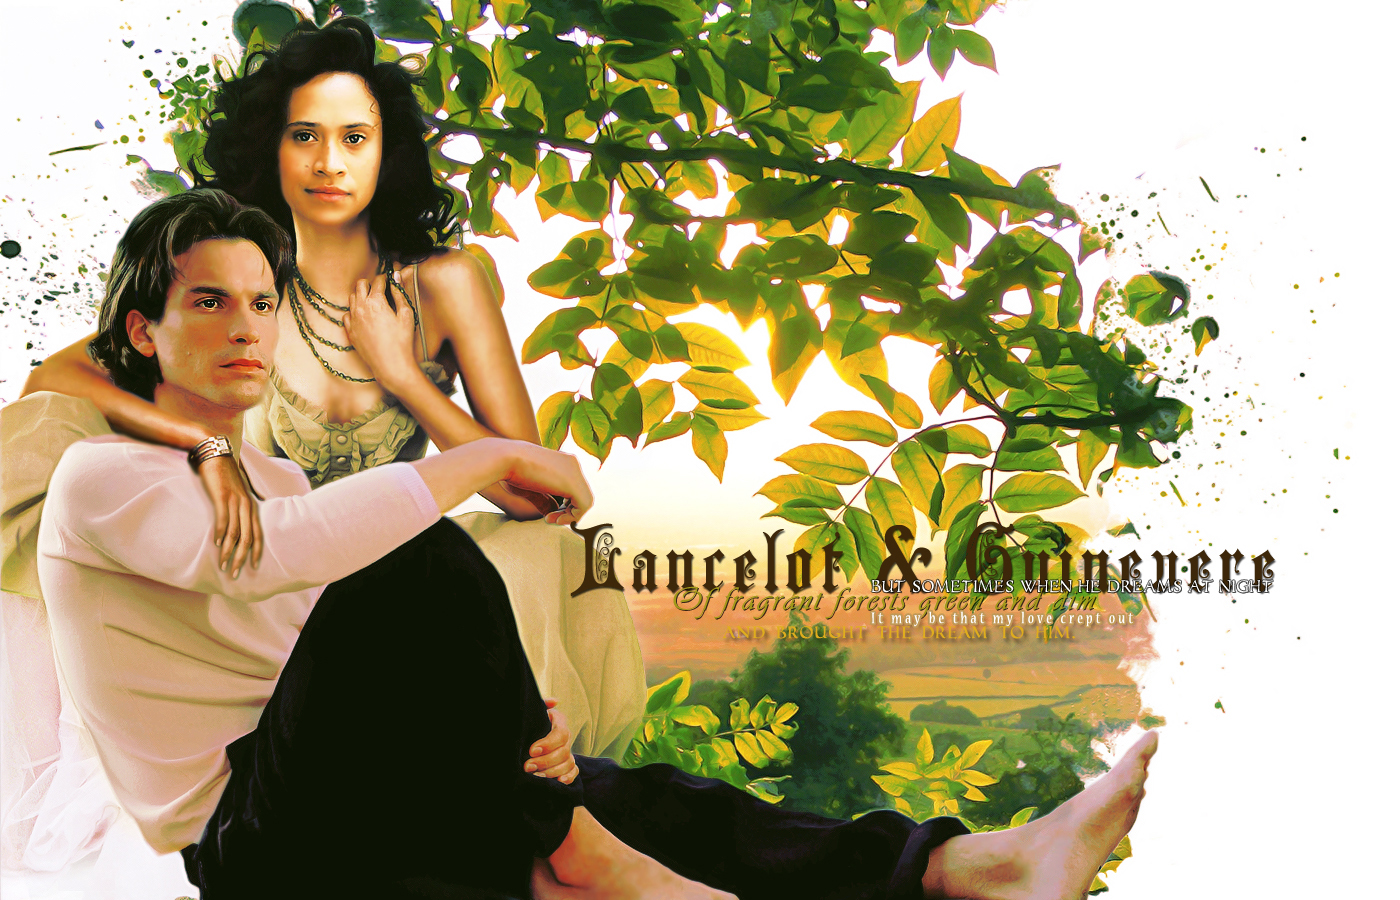 sir lancelot and guinevere relationship